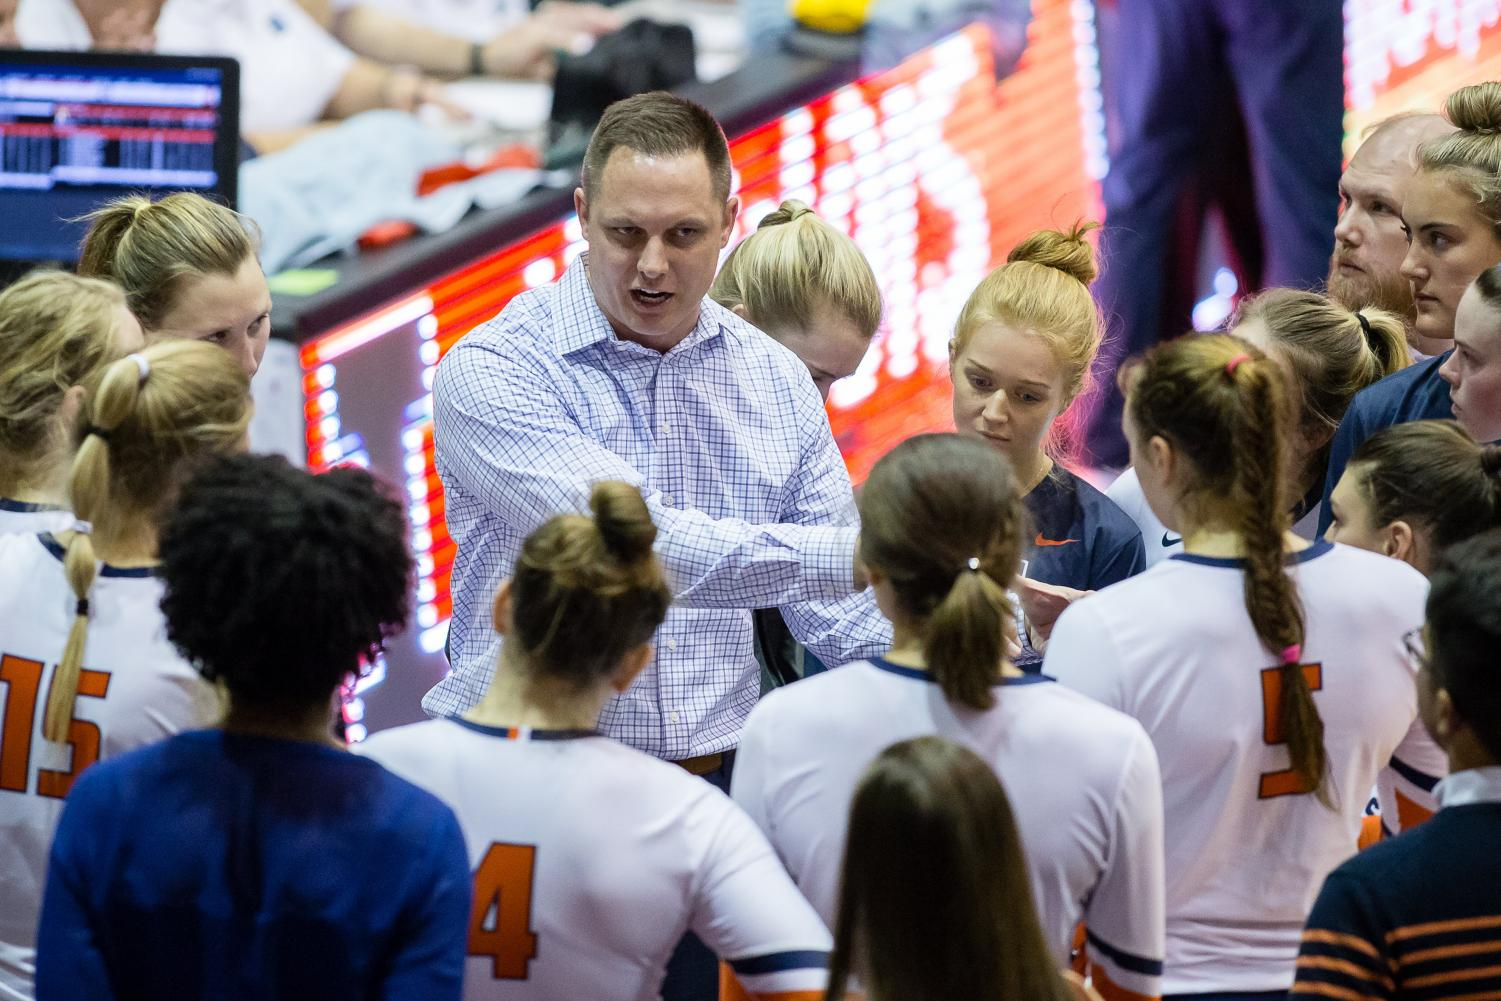 Illinois head coach Chris Tamas talks to his team during the match against Michigan at Huff Hall on Oct. 19. The Illini won 3-2.